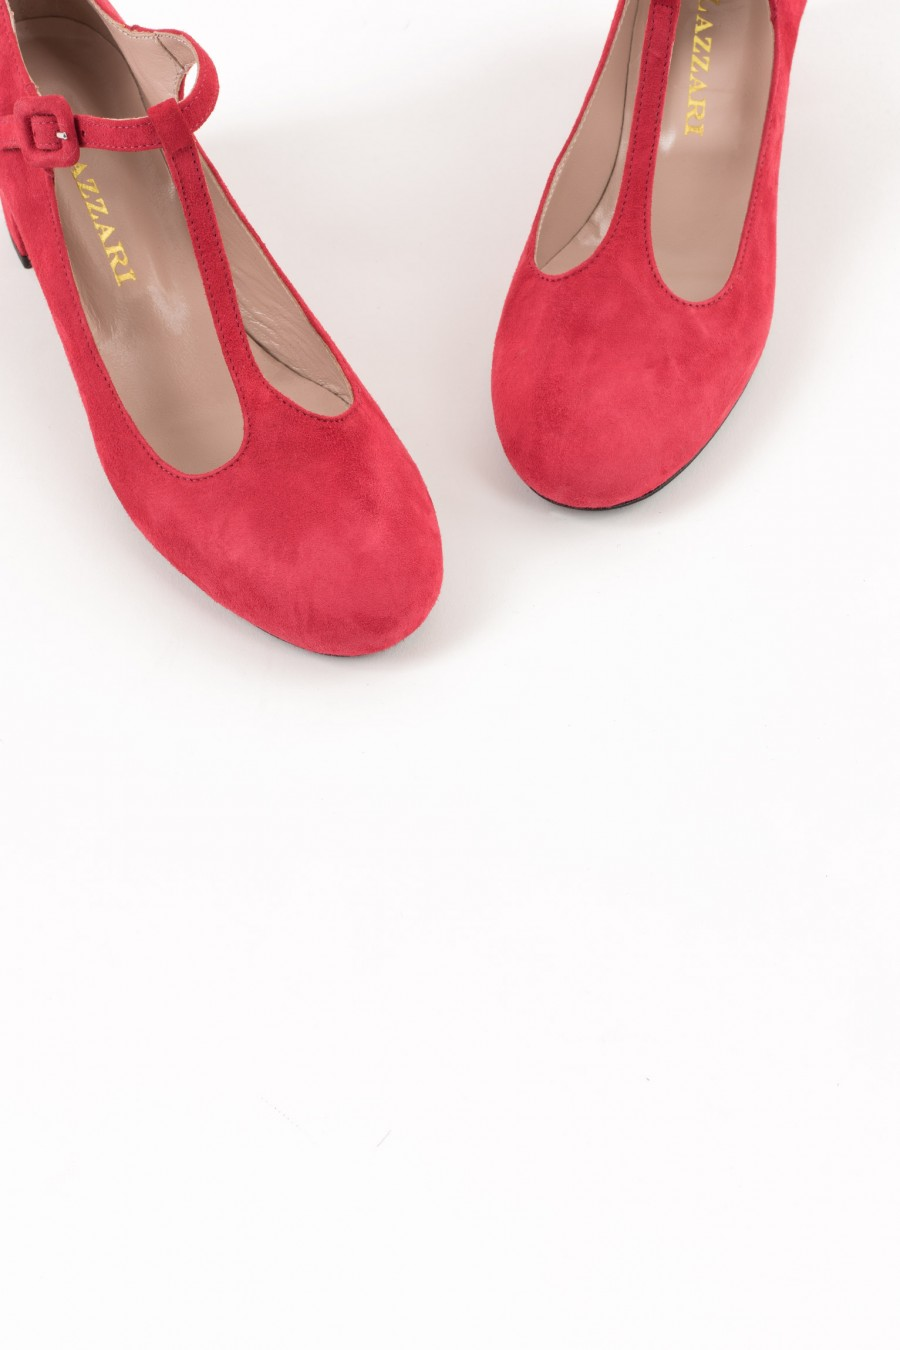 Red suede rounded toe bebè shoes